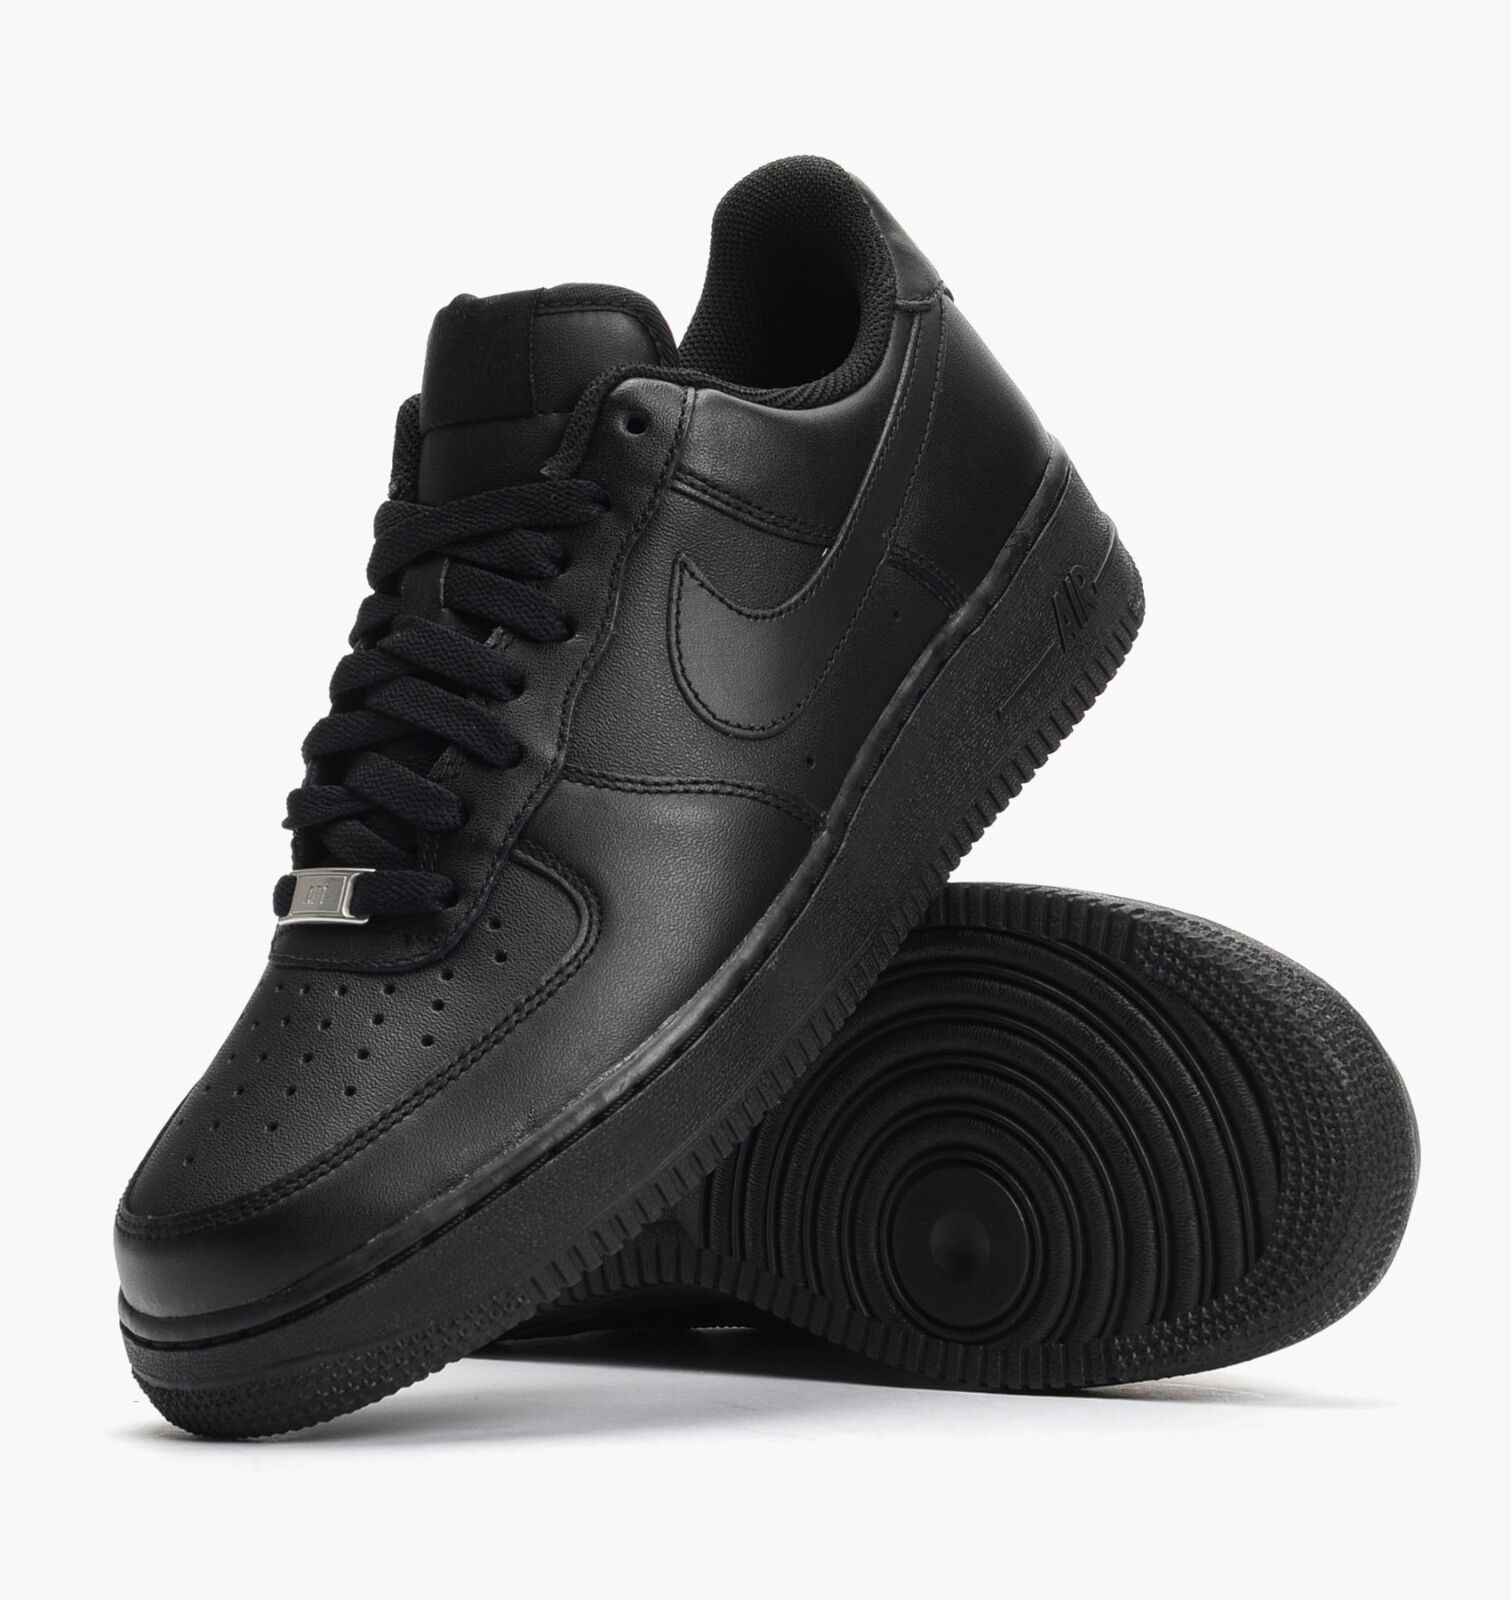 New shoes for men and women, limited time discount NIKE AIR FORCE 1 LOW OG MENS BLACK/BLACK ALL LEATHER 315122-001 100% AUTHENTIC!!